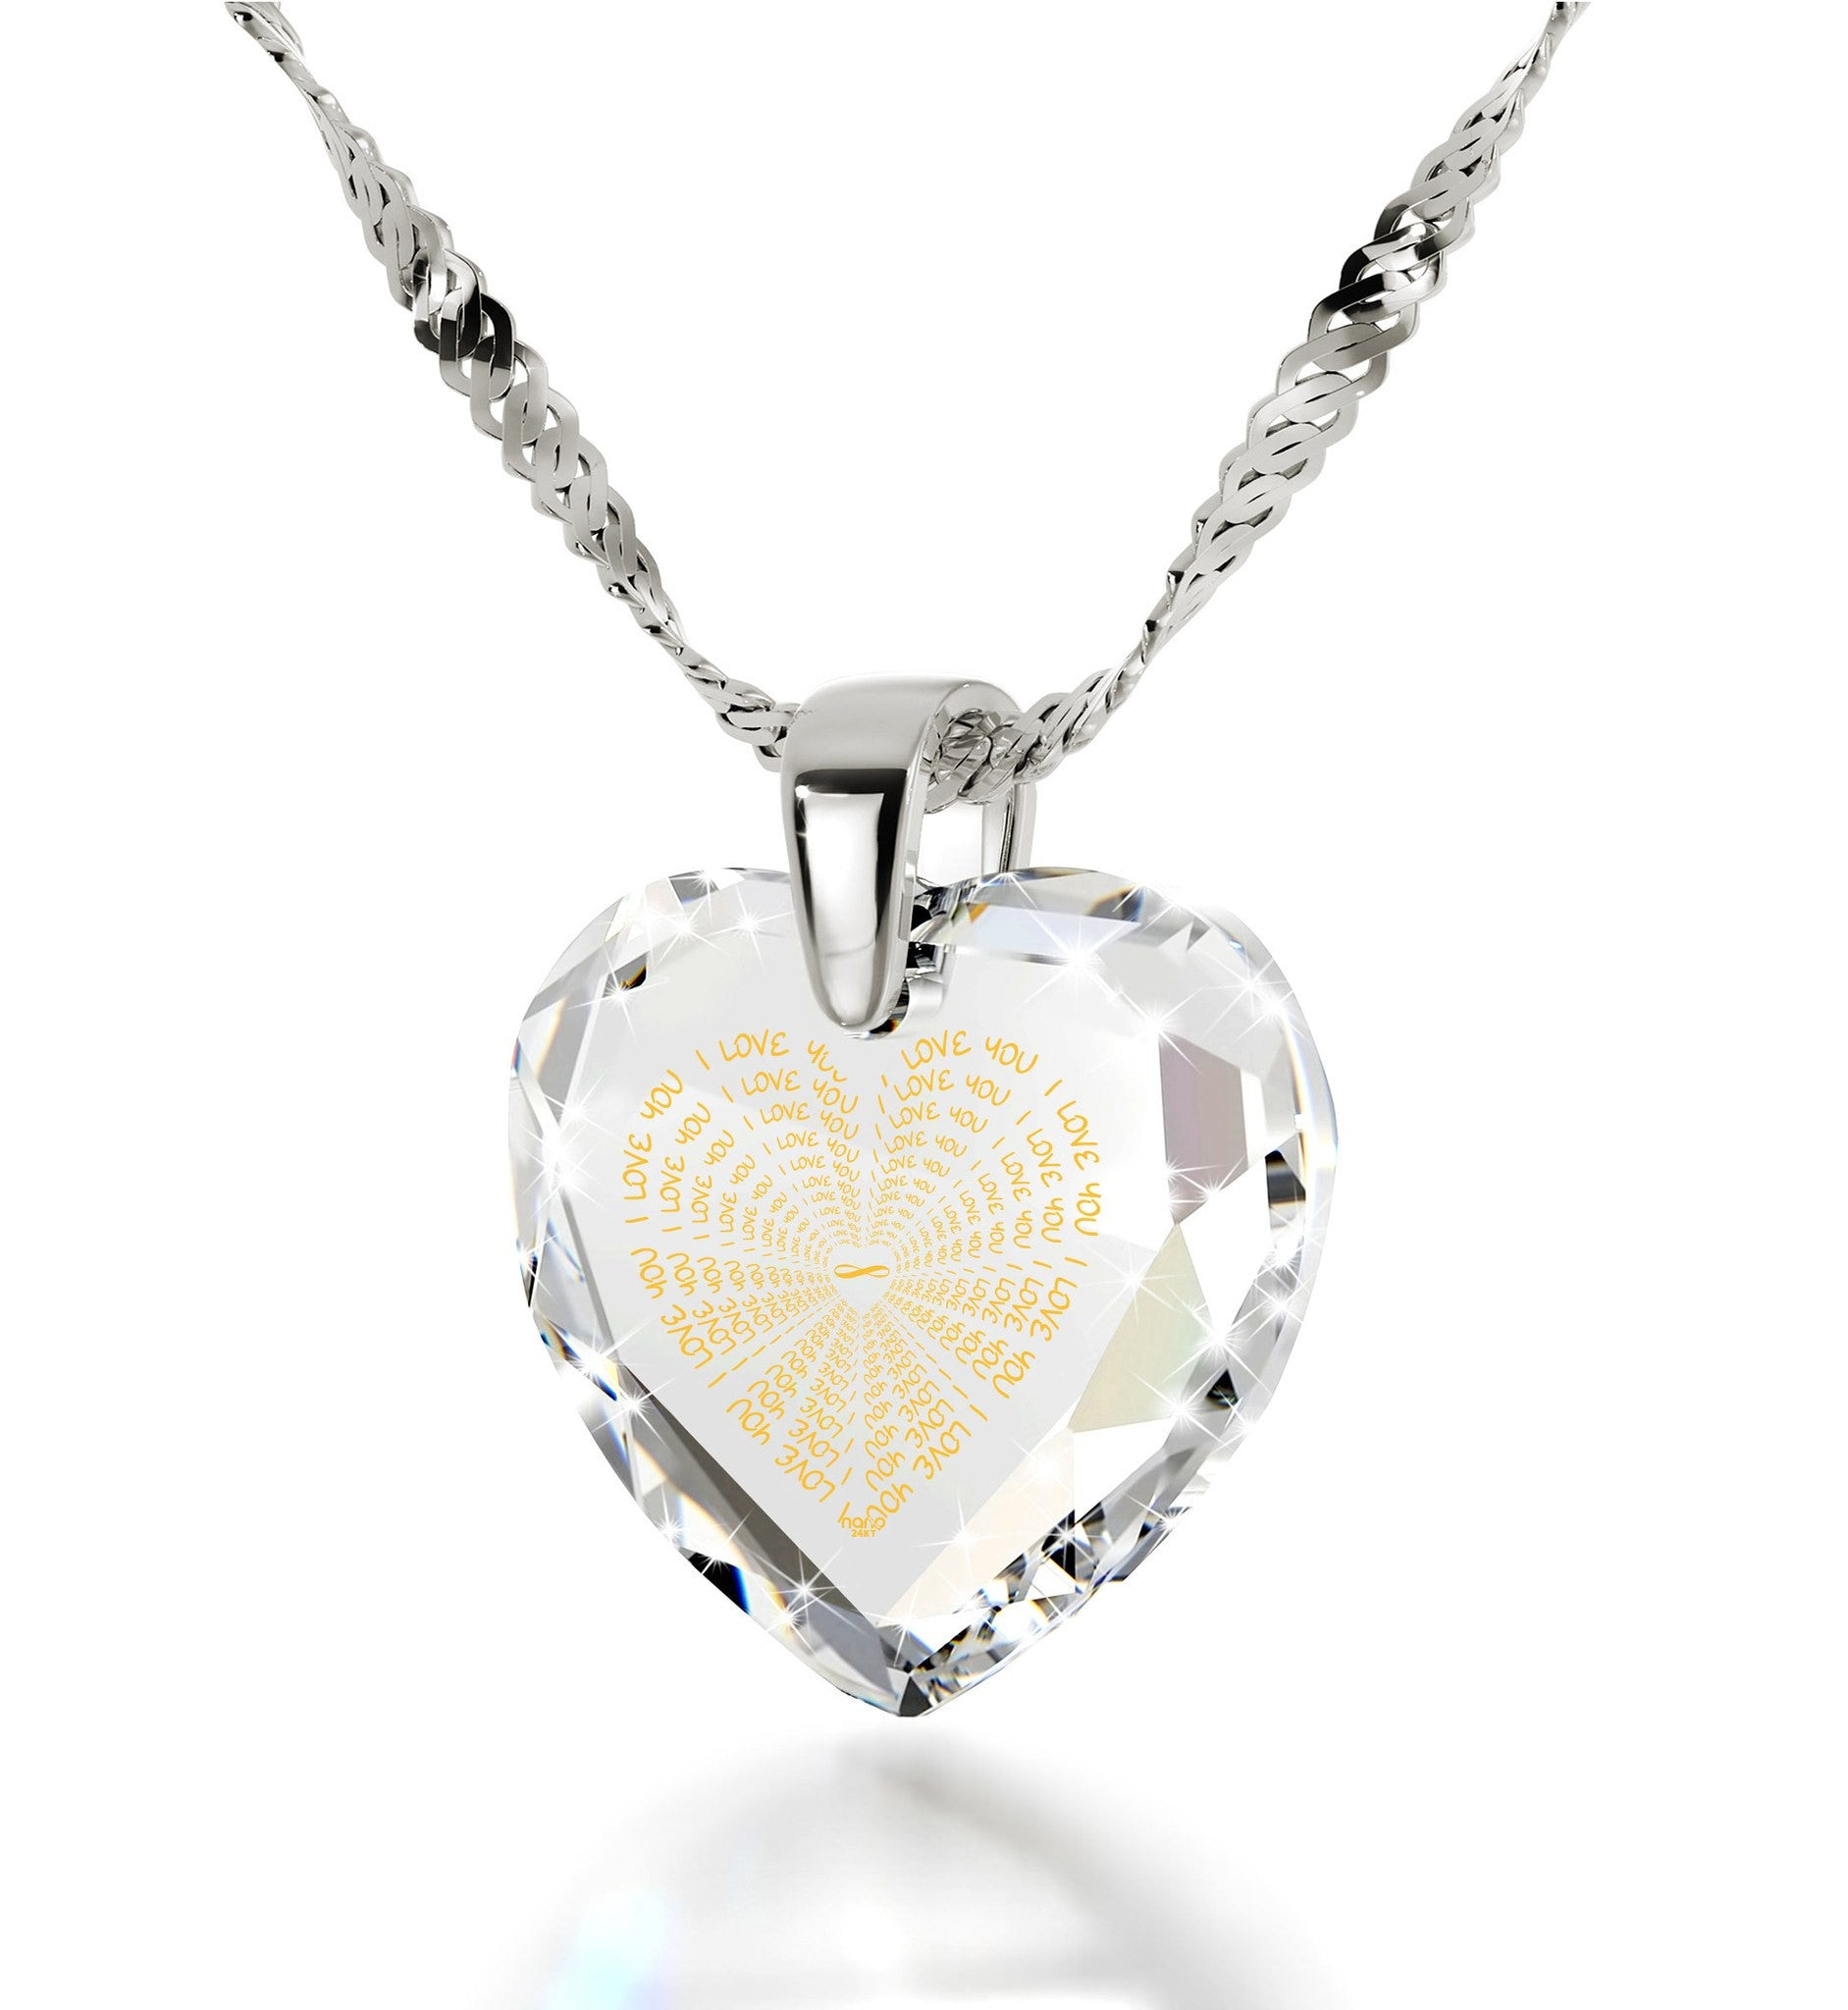 """I Love You"" Necklace, Clear CZ Jewelry, Best Valentine Gift for Her"